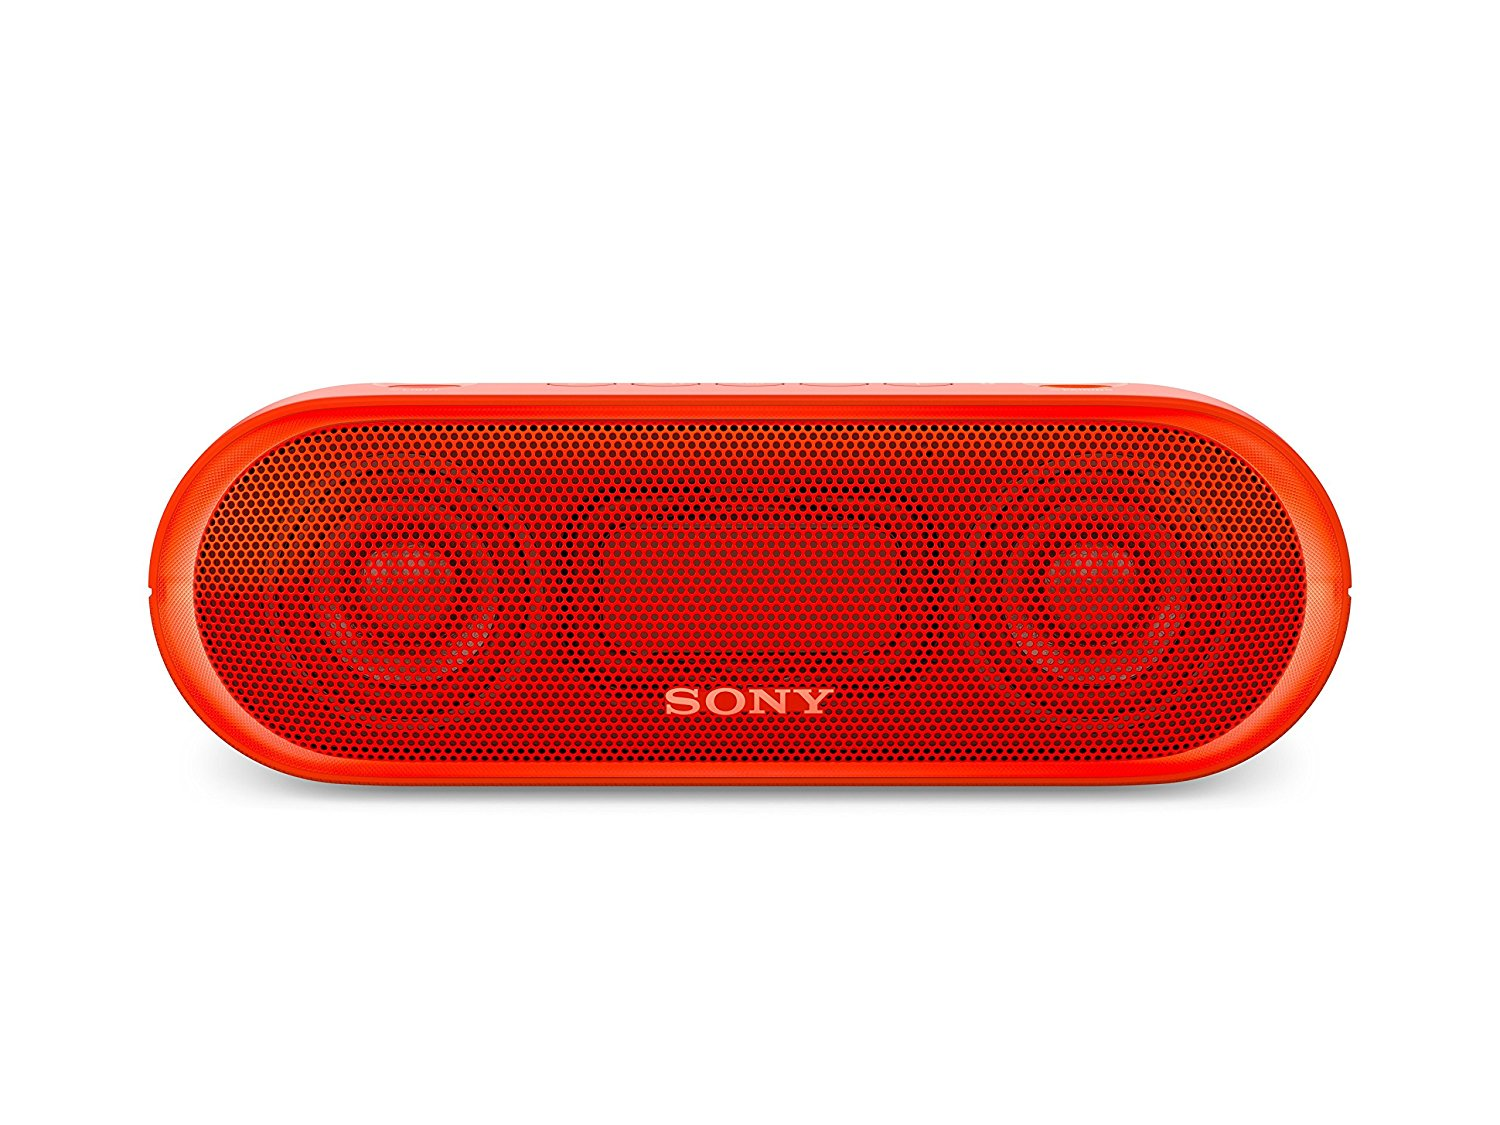 Sony Bluetooth Lautsprecher amazon